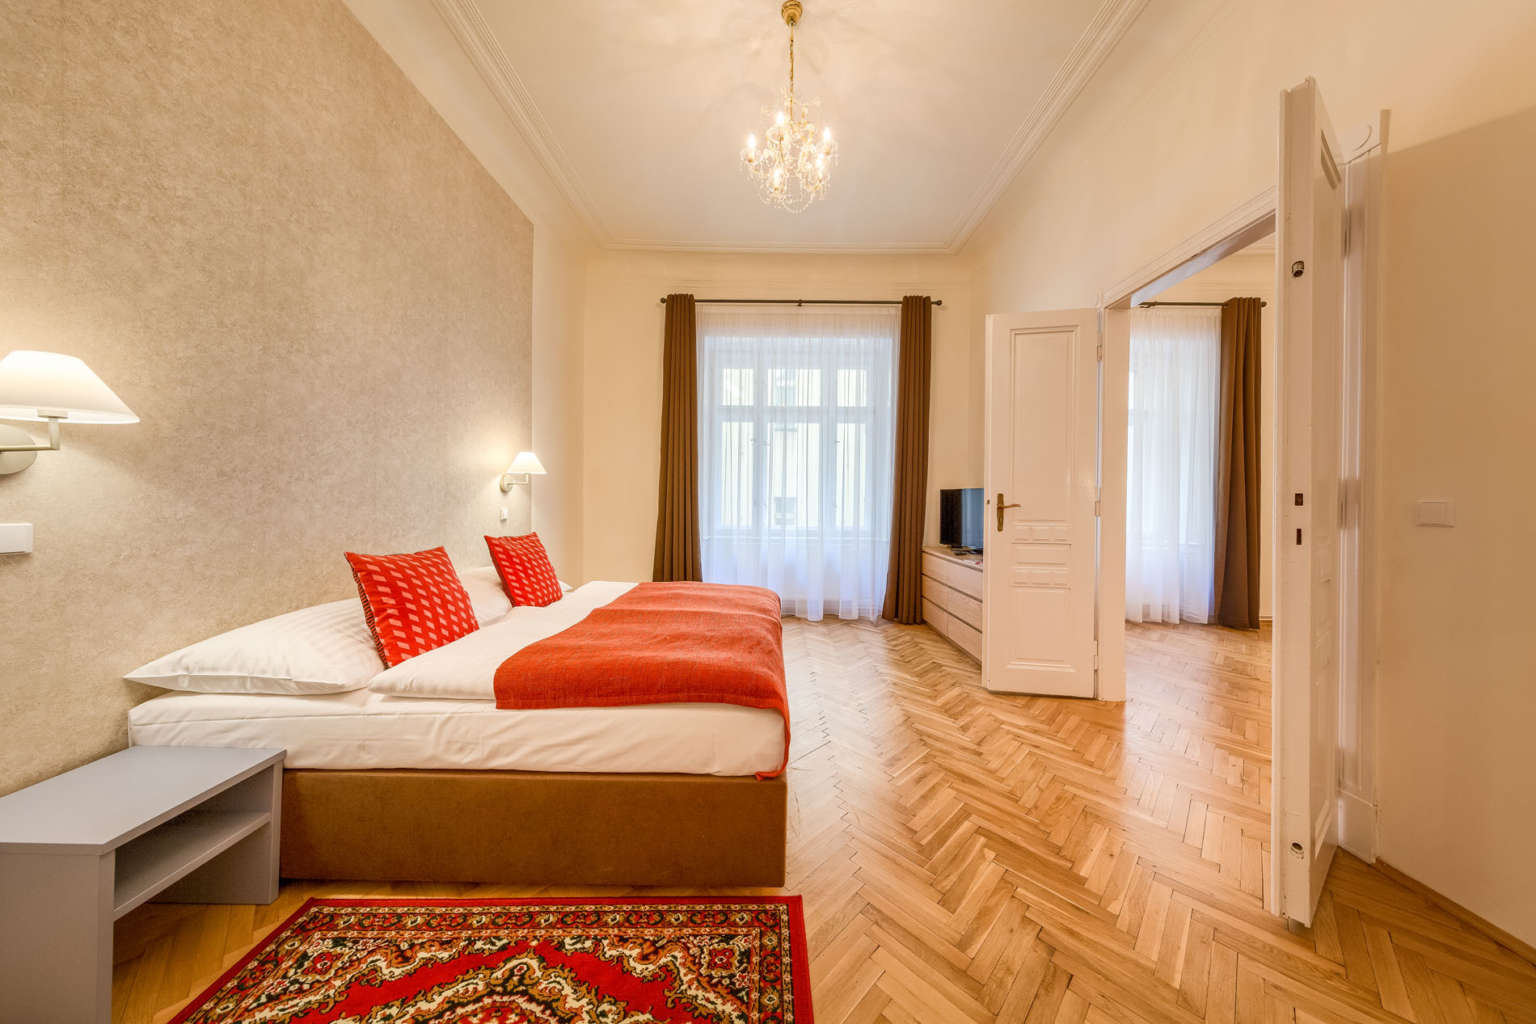 Apartments 39 Wenceslas Square | At Home in Prague